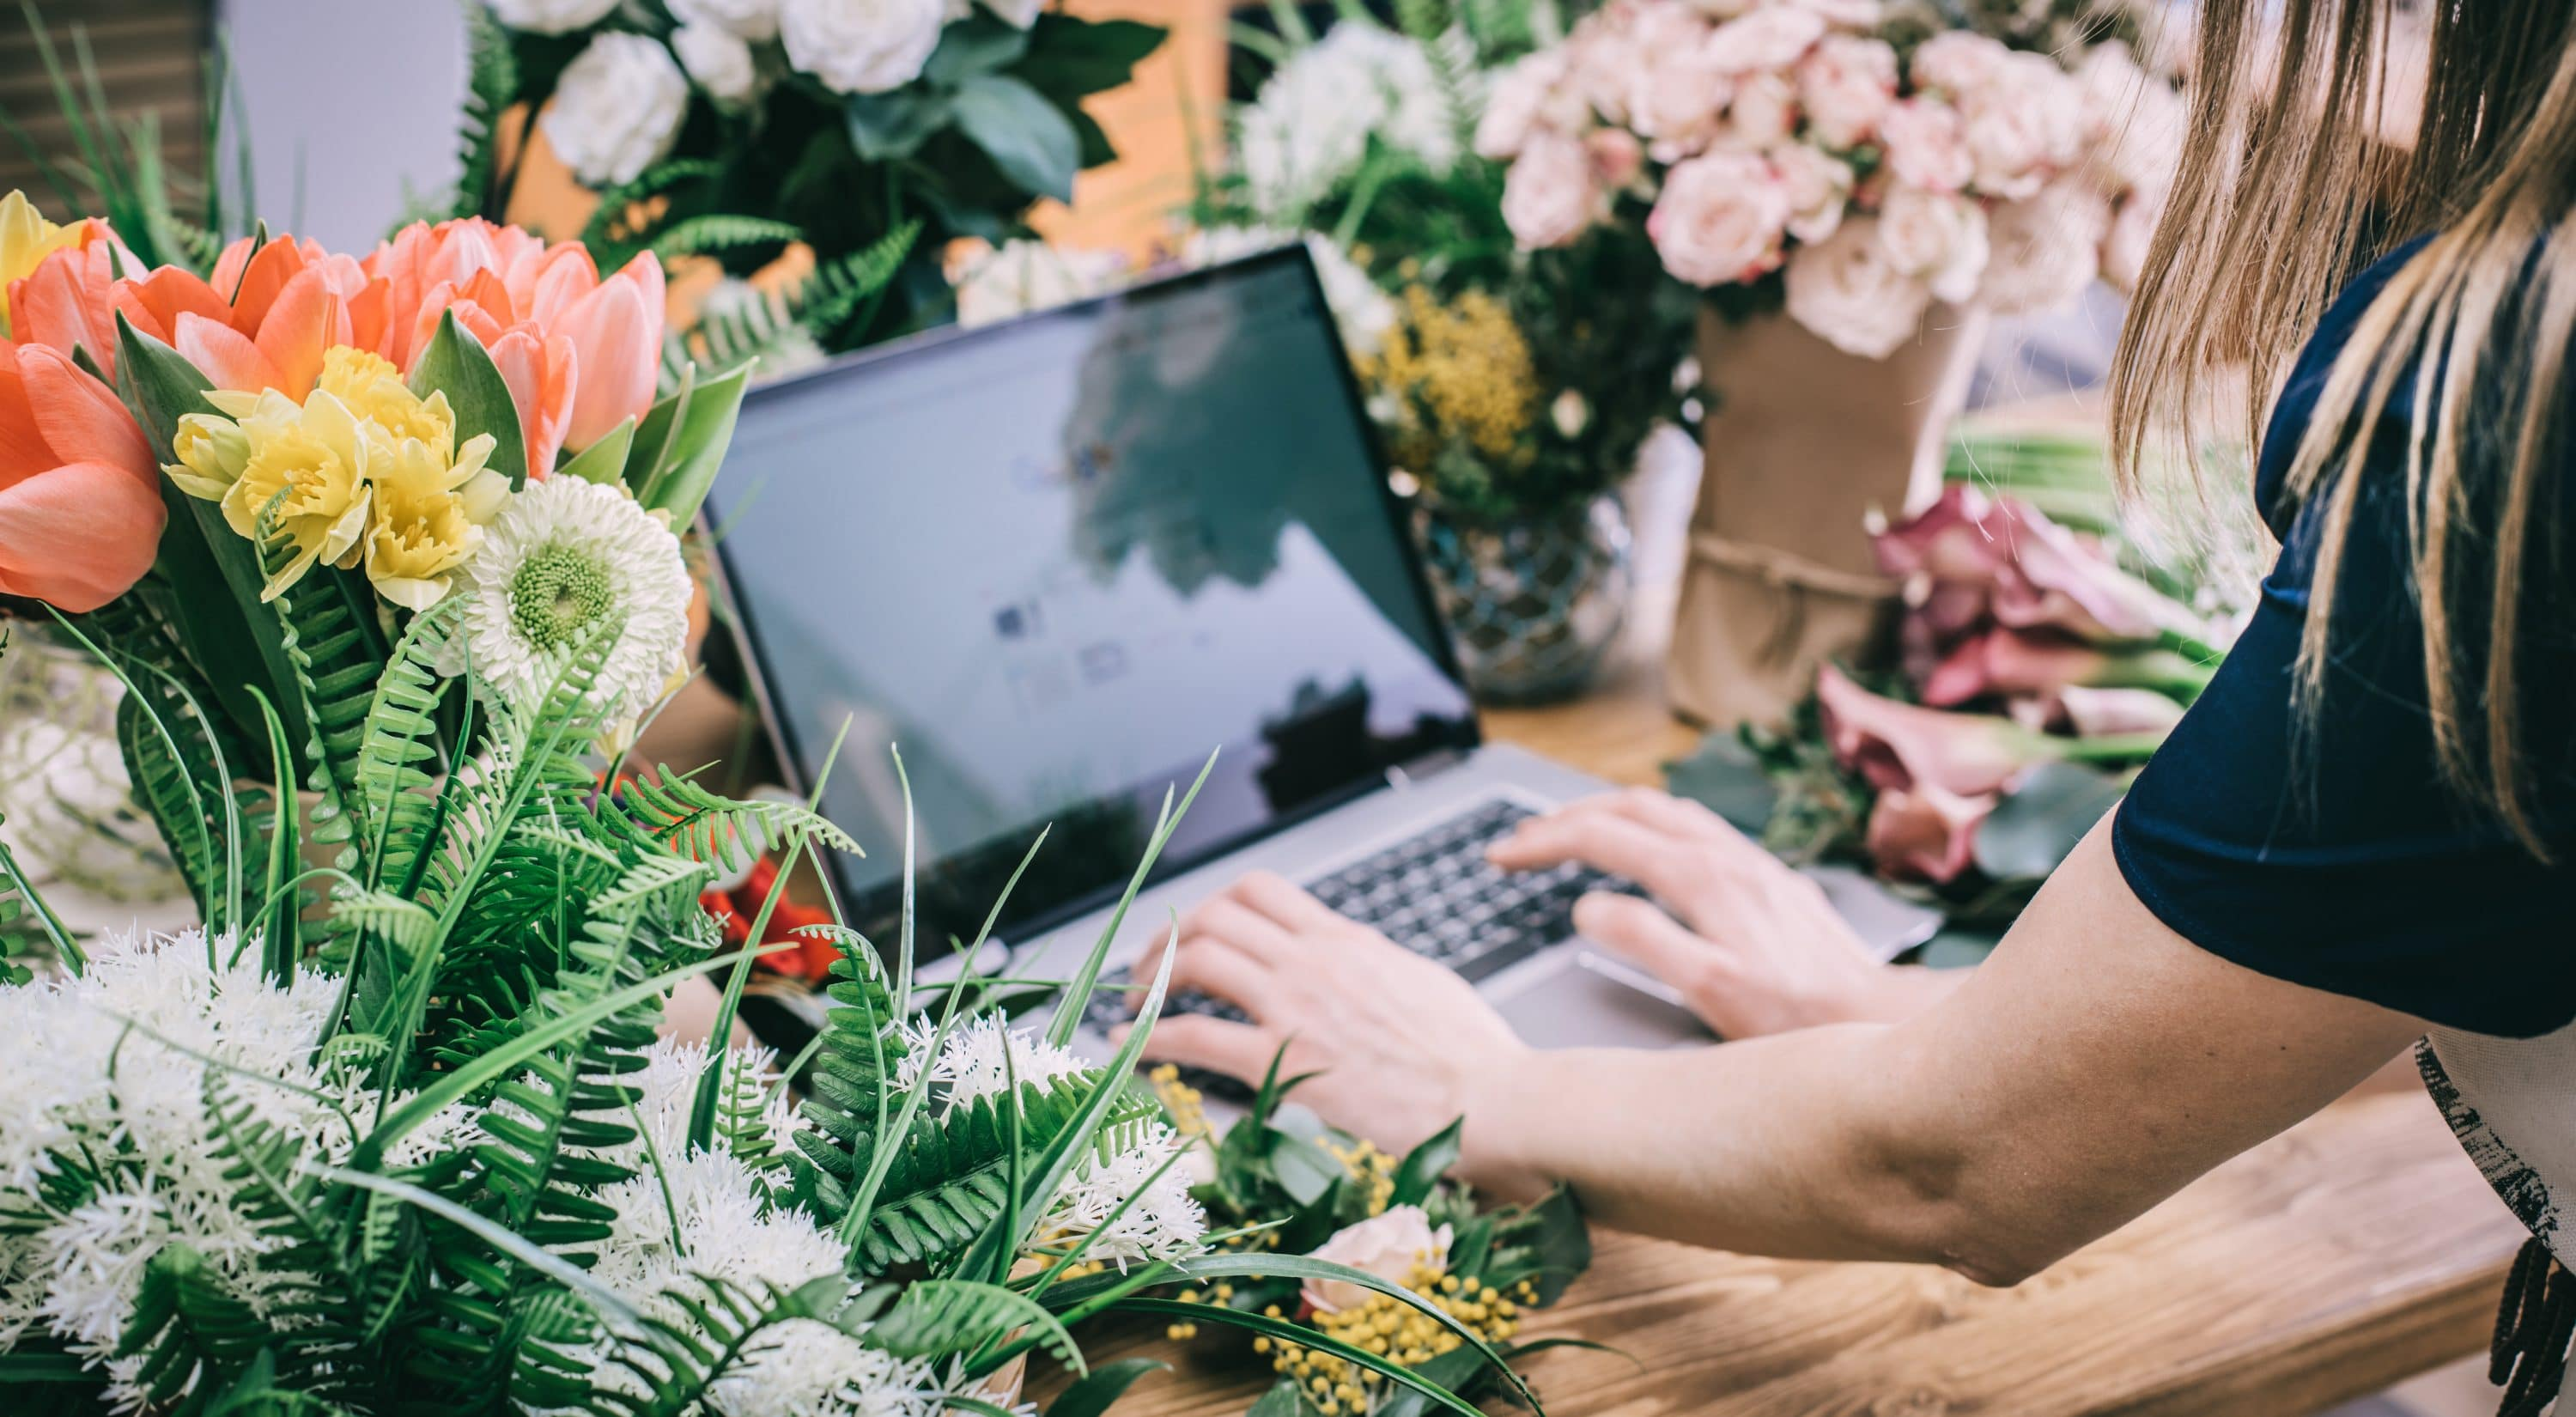 small local florist updates her website on laptop surrounded by flowers, Dentons Digital, Website Design, Wiltshire, Somerset